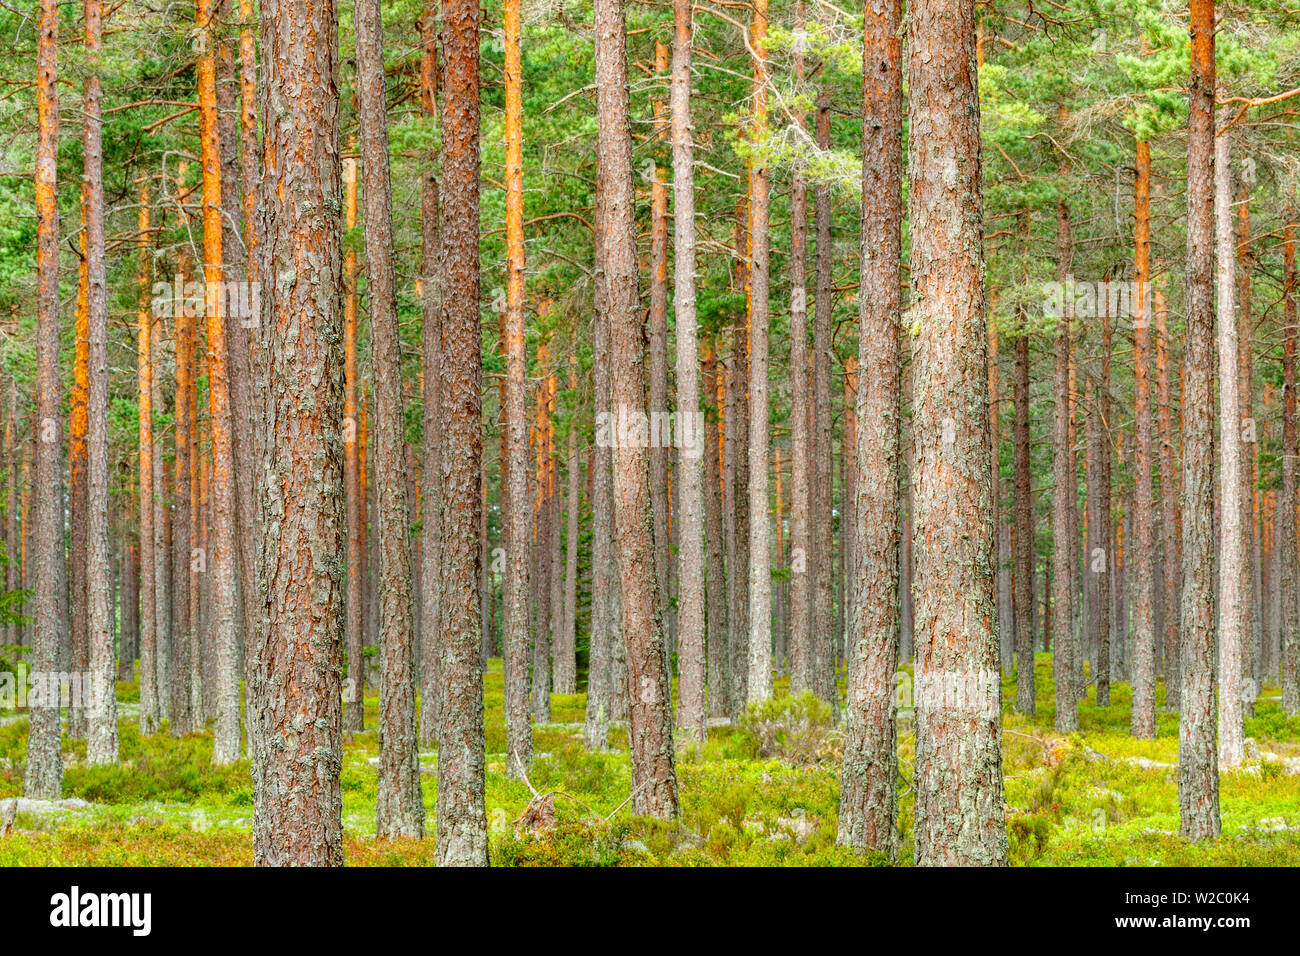 Lot of Pine tree trunks in a woodland - Stock Image